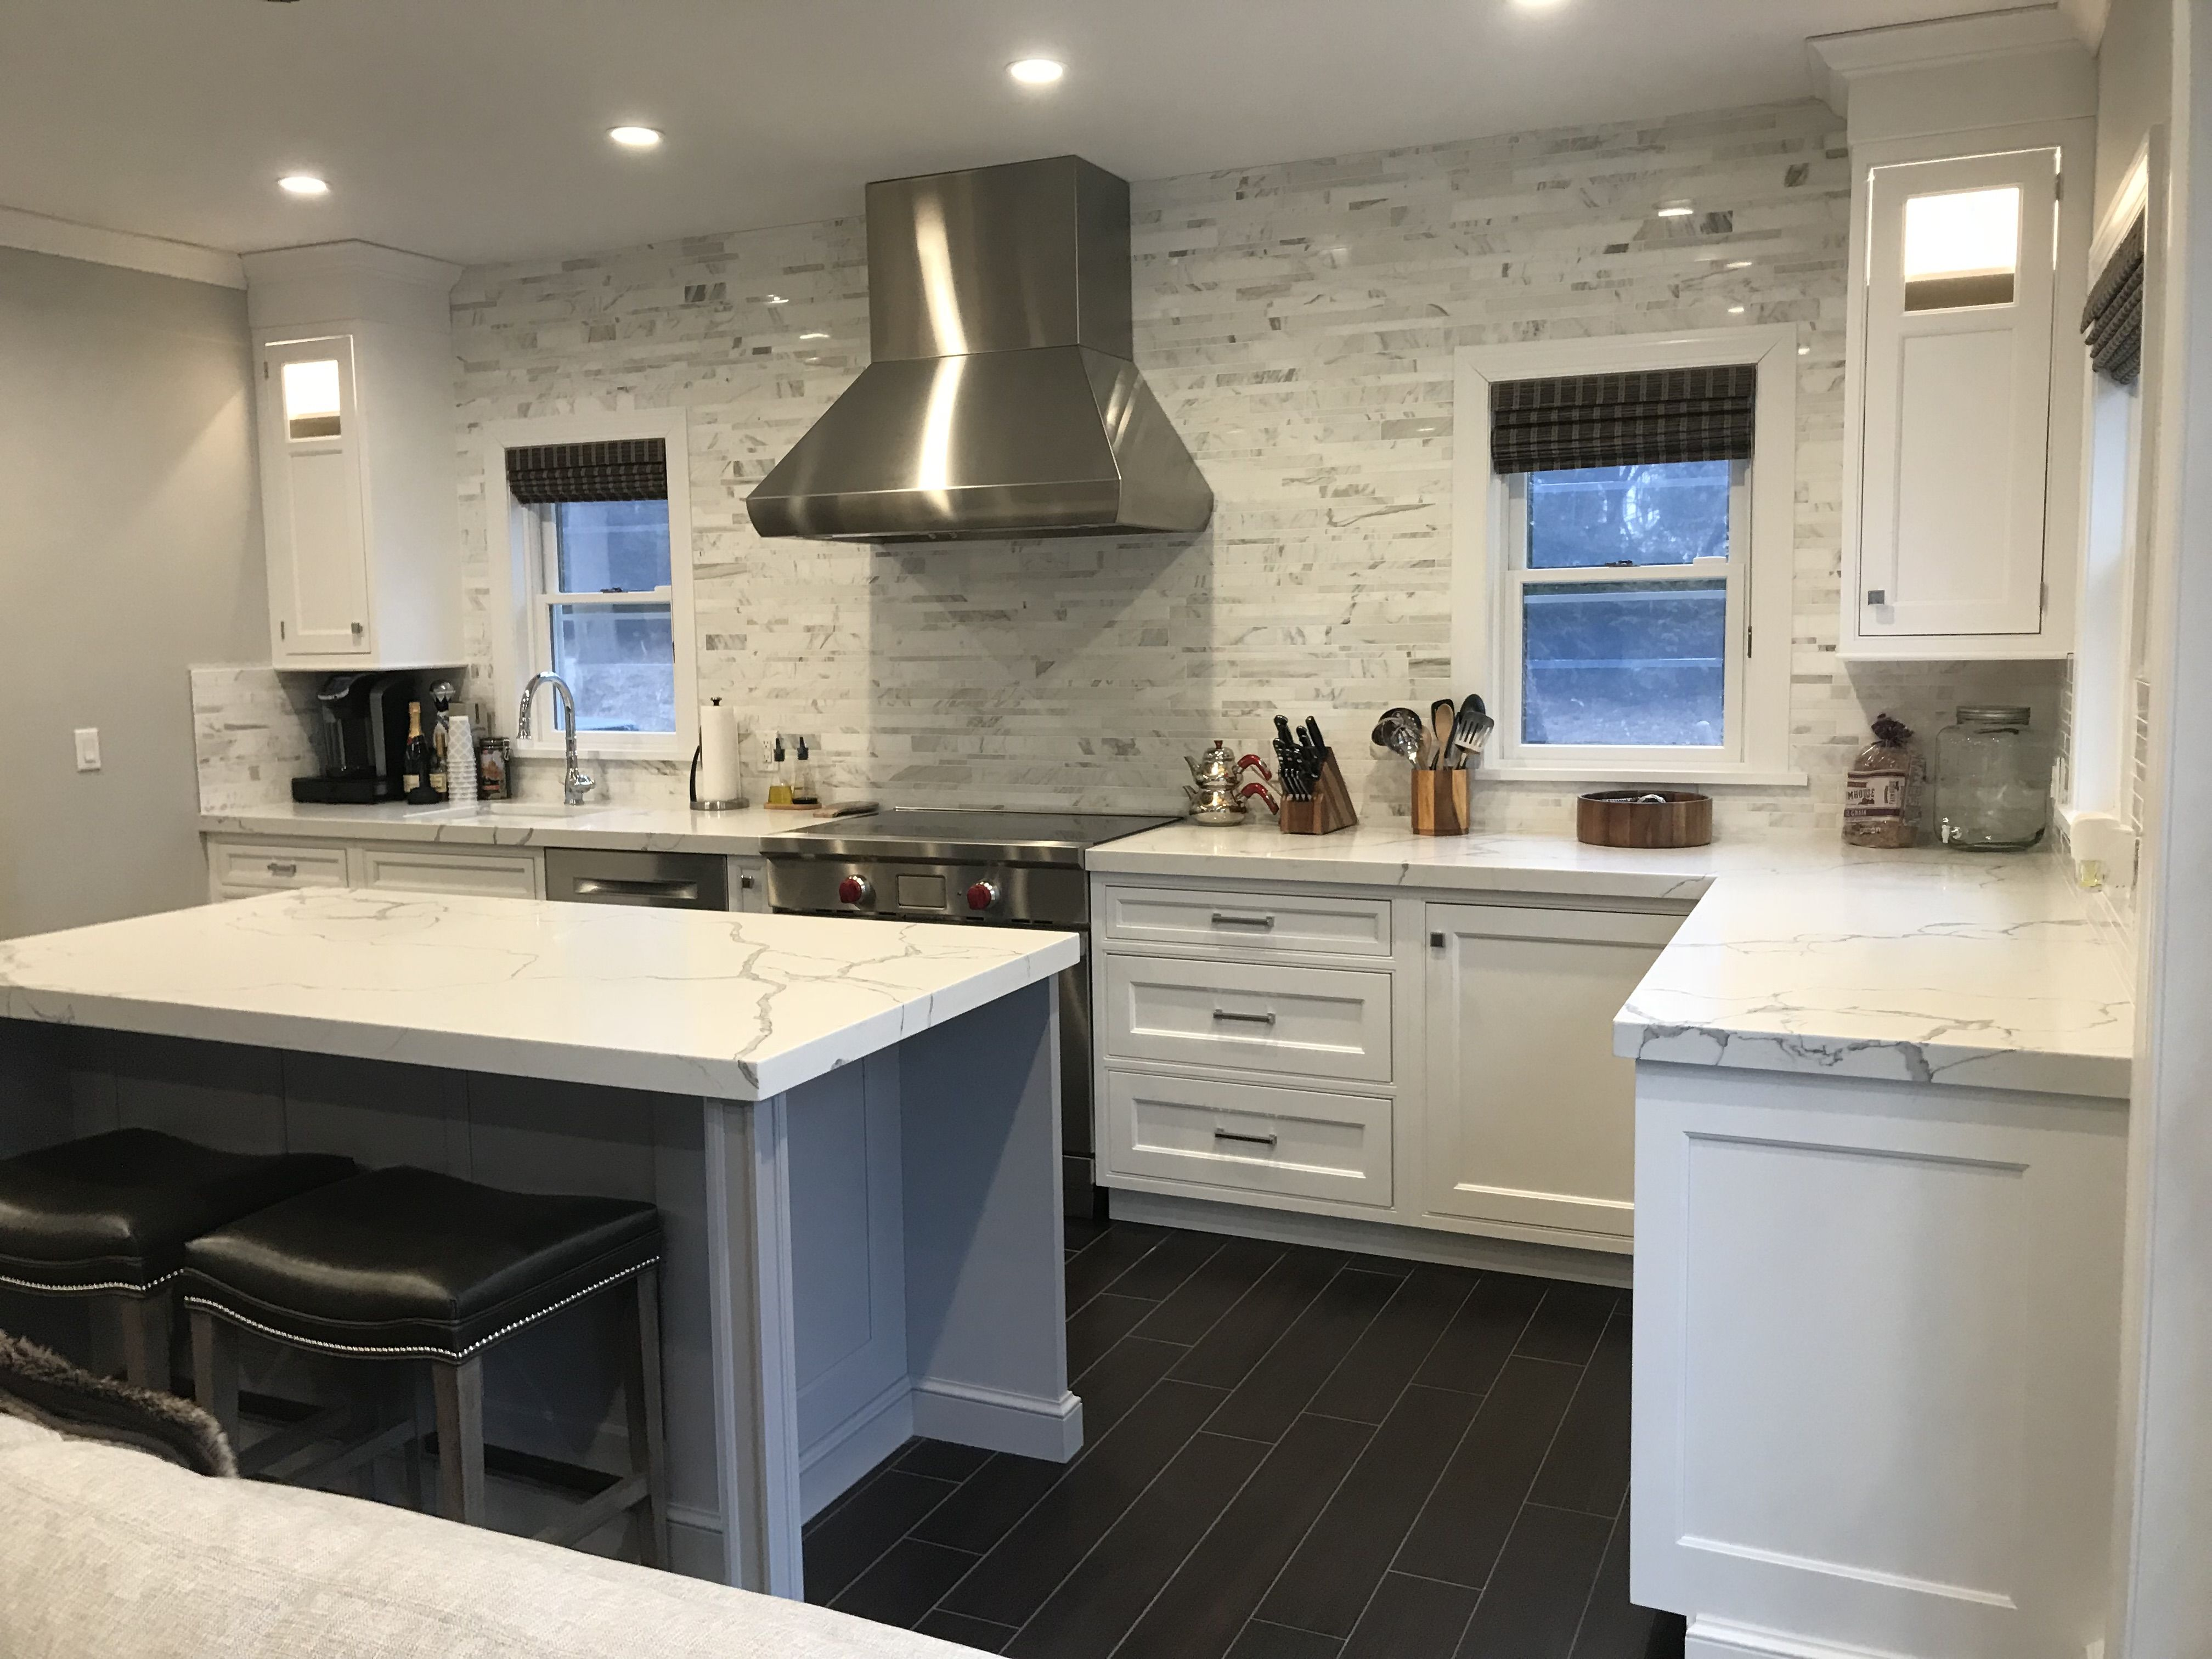 Exceptional Ruttcabinetry Designed And Built For A Bachelor